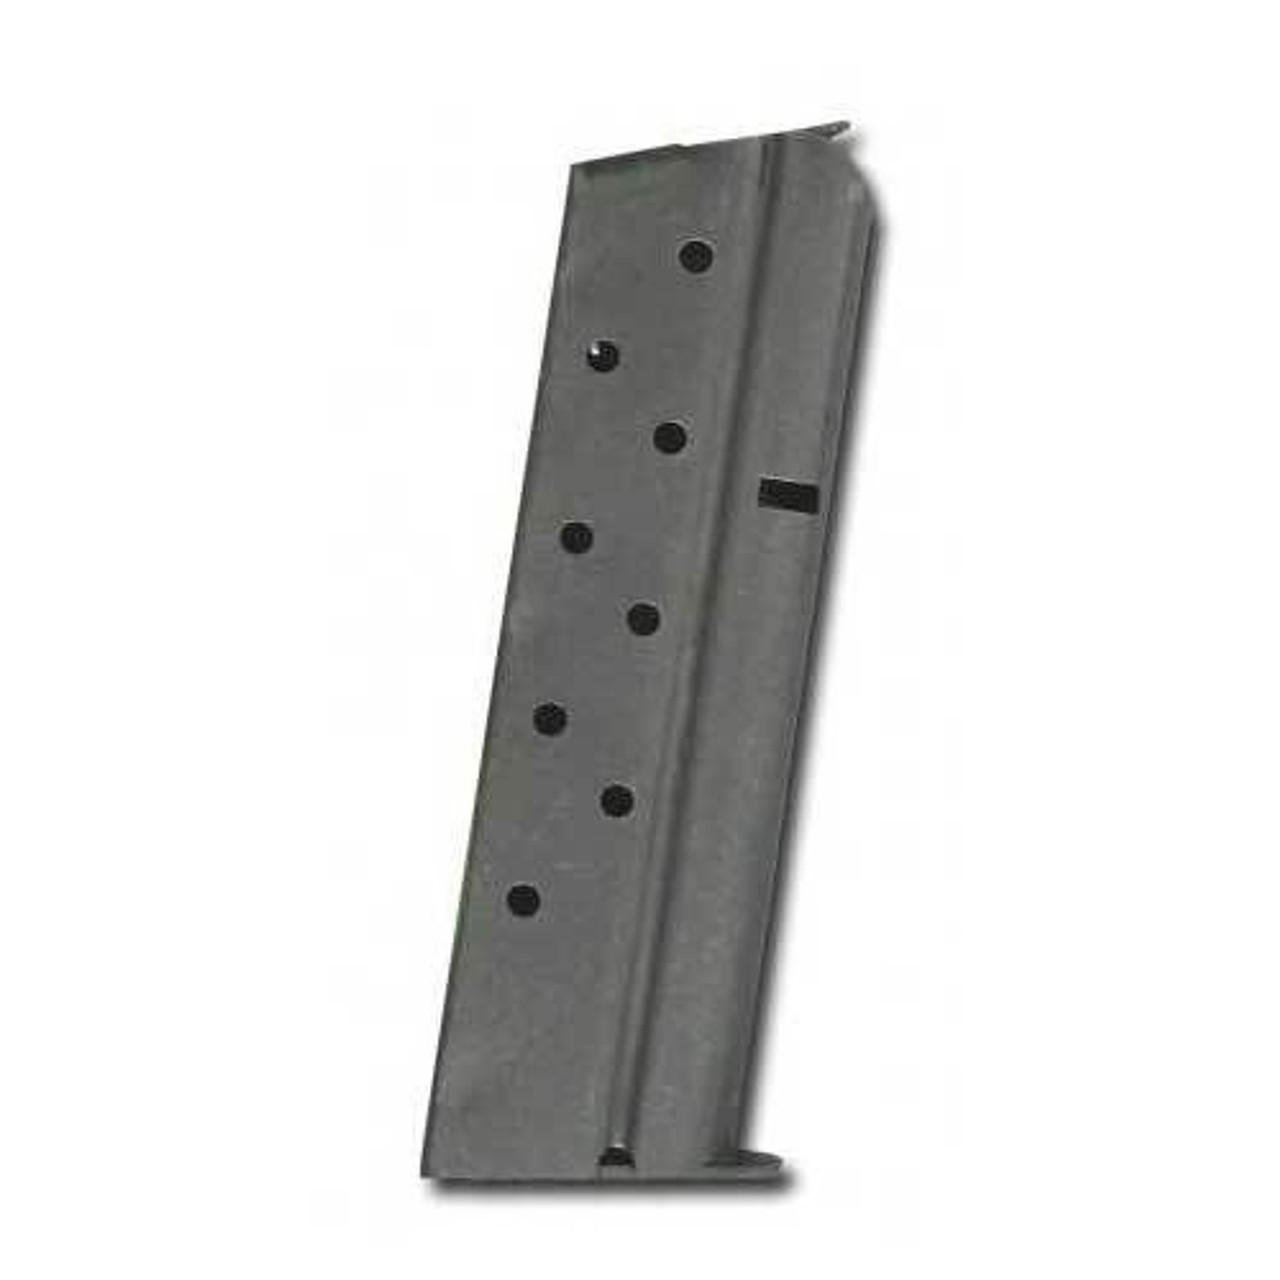 Factory NEW Kimber 1911 38 Super Stainless 9 Round Magazine 1000351A